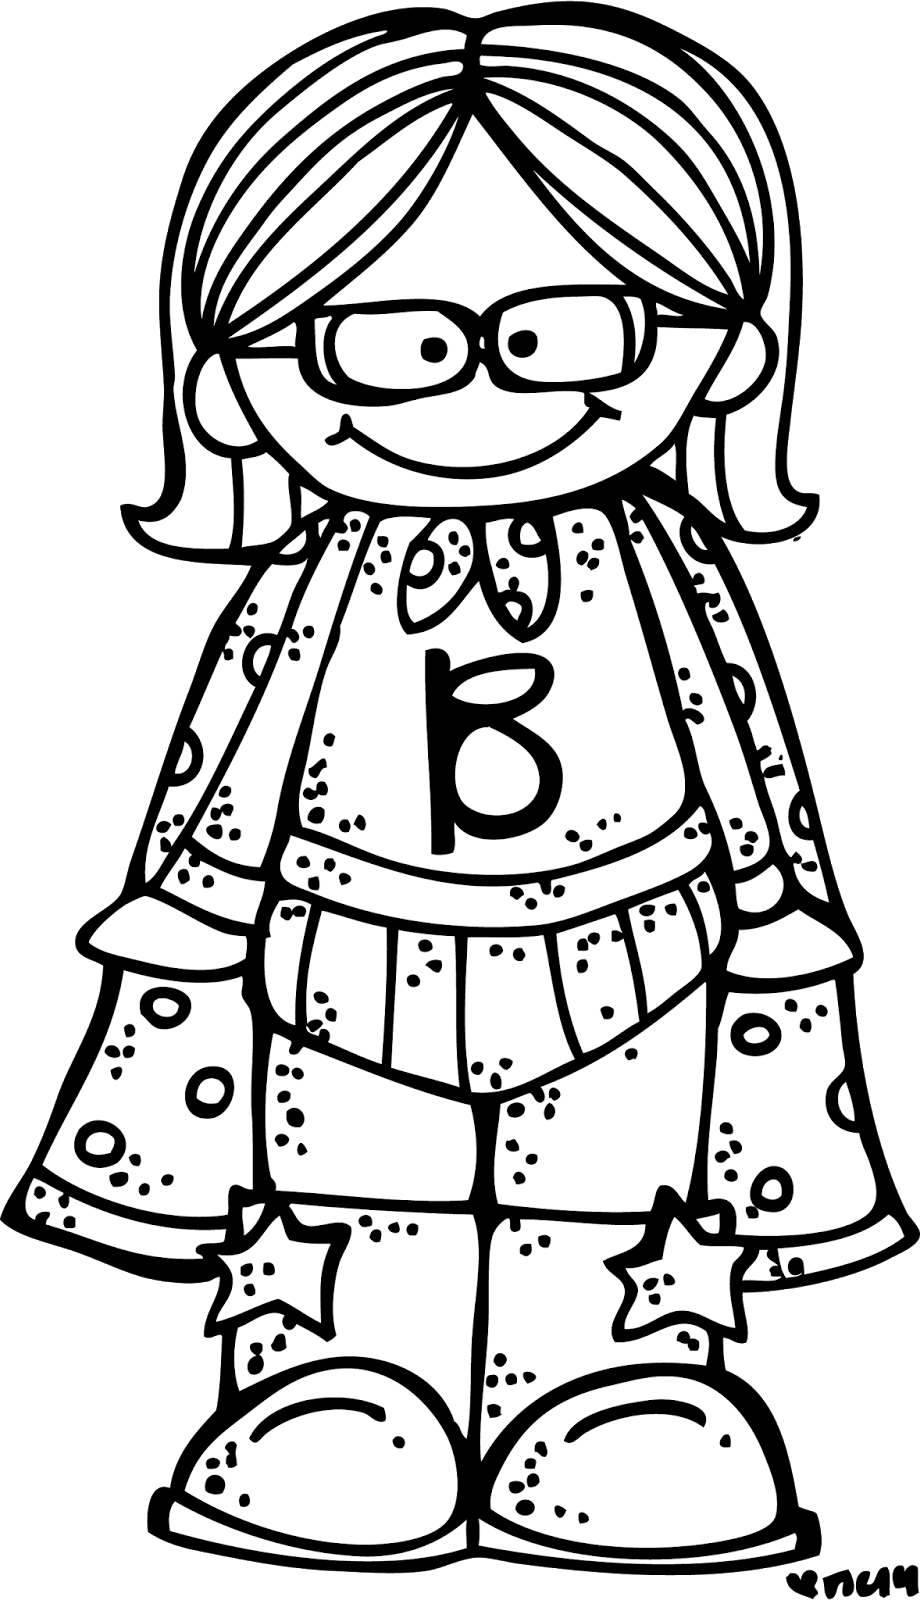 Story book clipart black and white vector library download MelonHeadz: Meet Baylee!!! vector library download